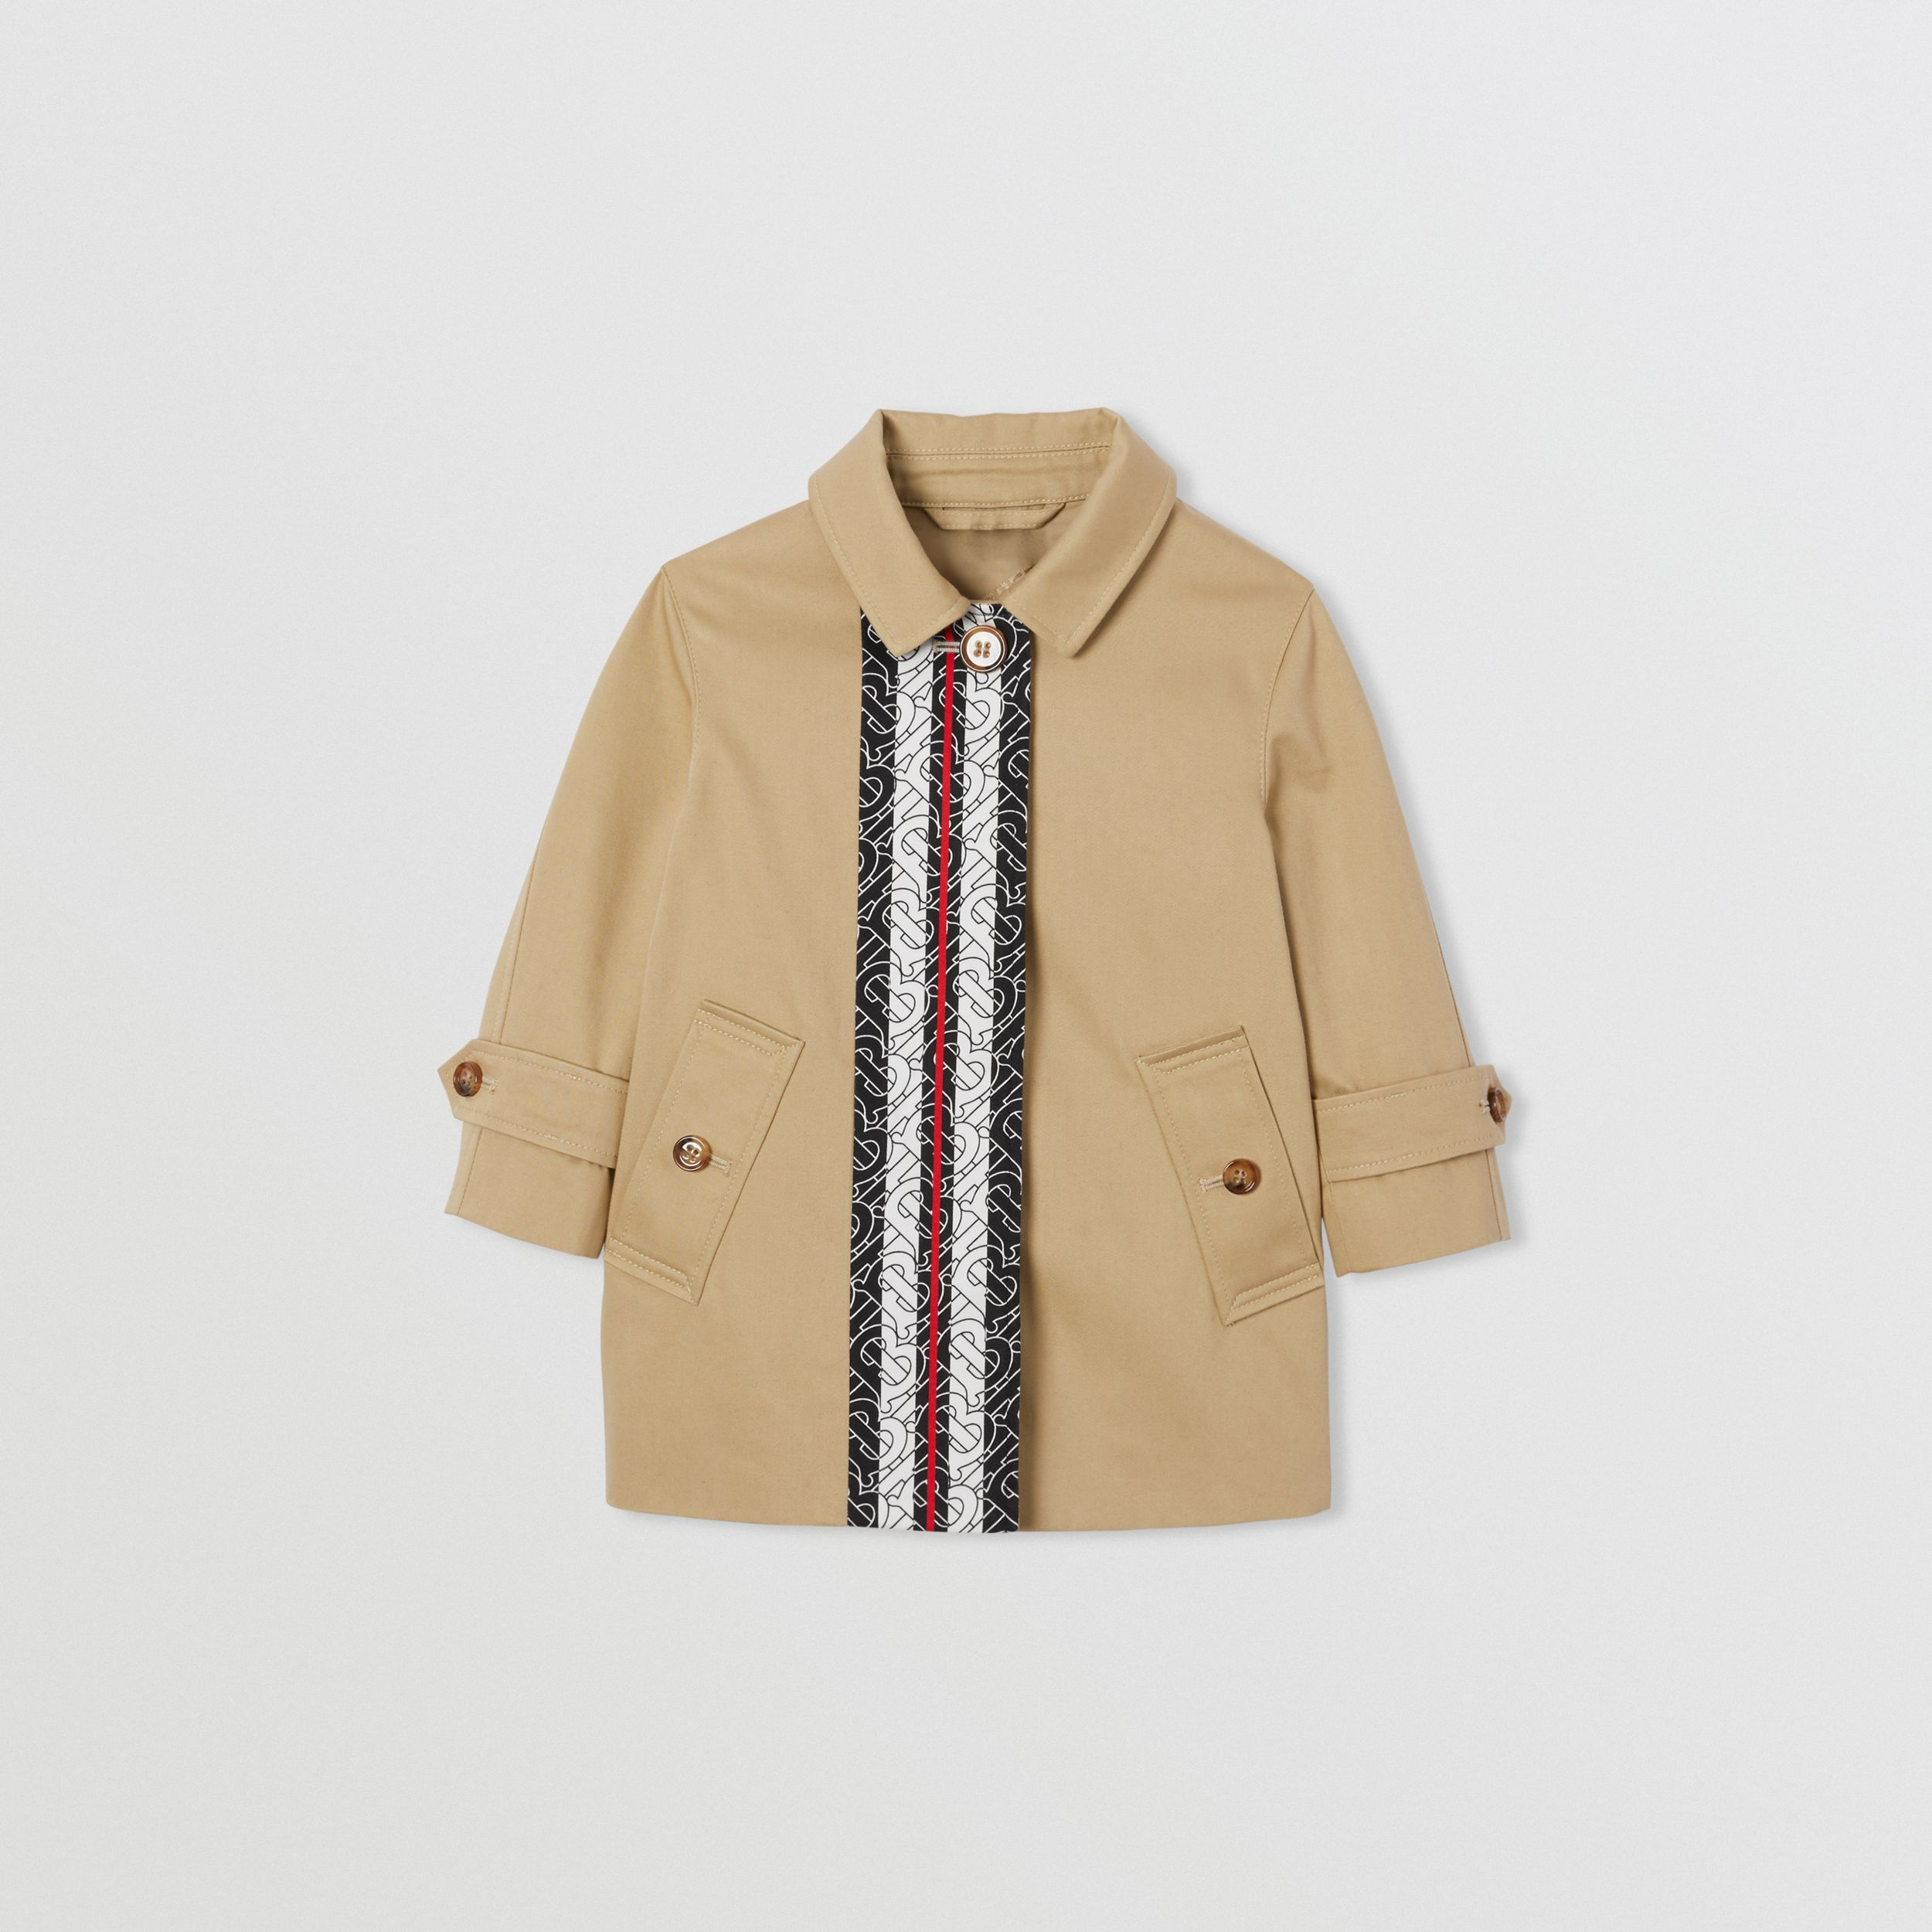 Monogram Stripe Print Cotton Car Coat in Honey - Children | Burberry United Kingdom - 1